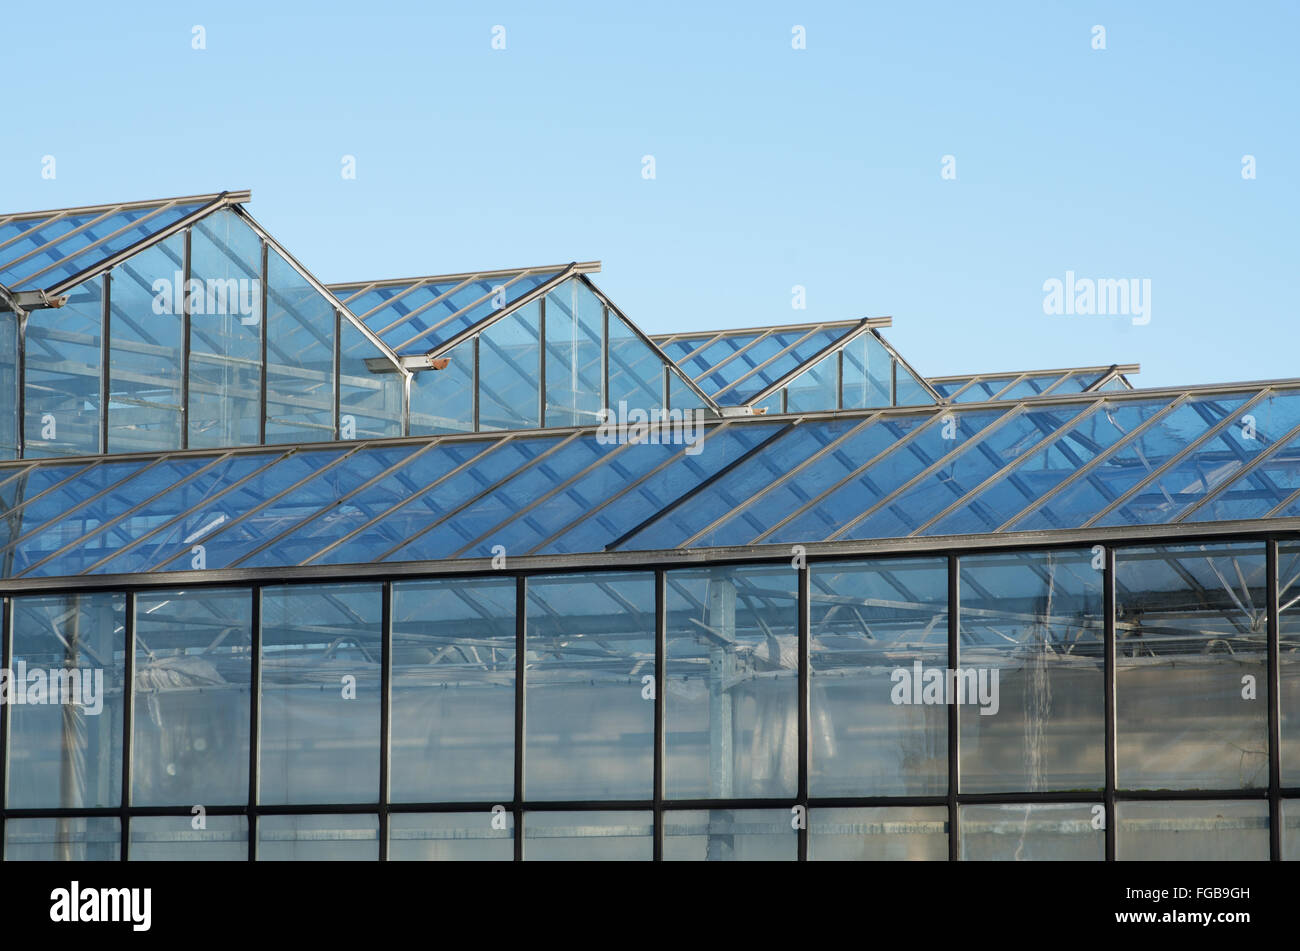 Roof of greenhouse with glass panels. - Stock Image